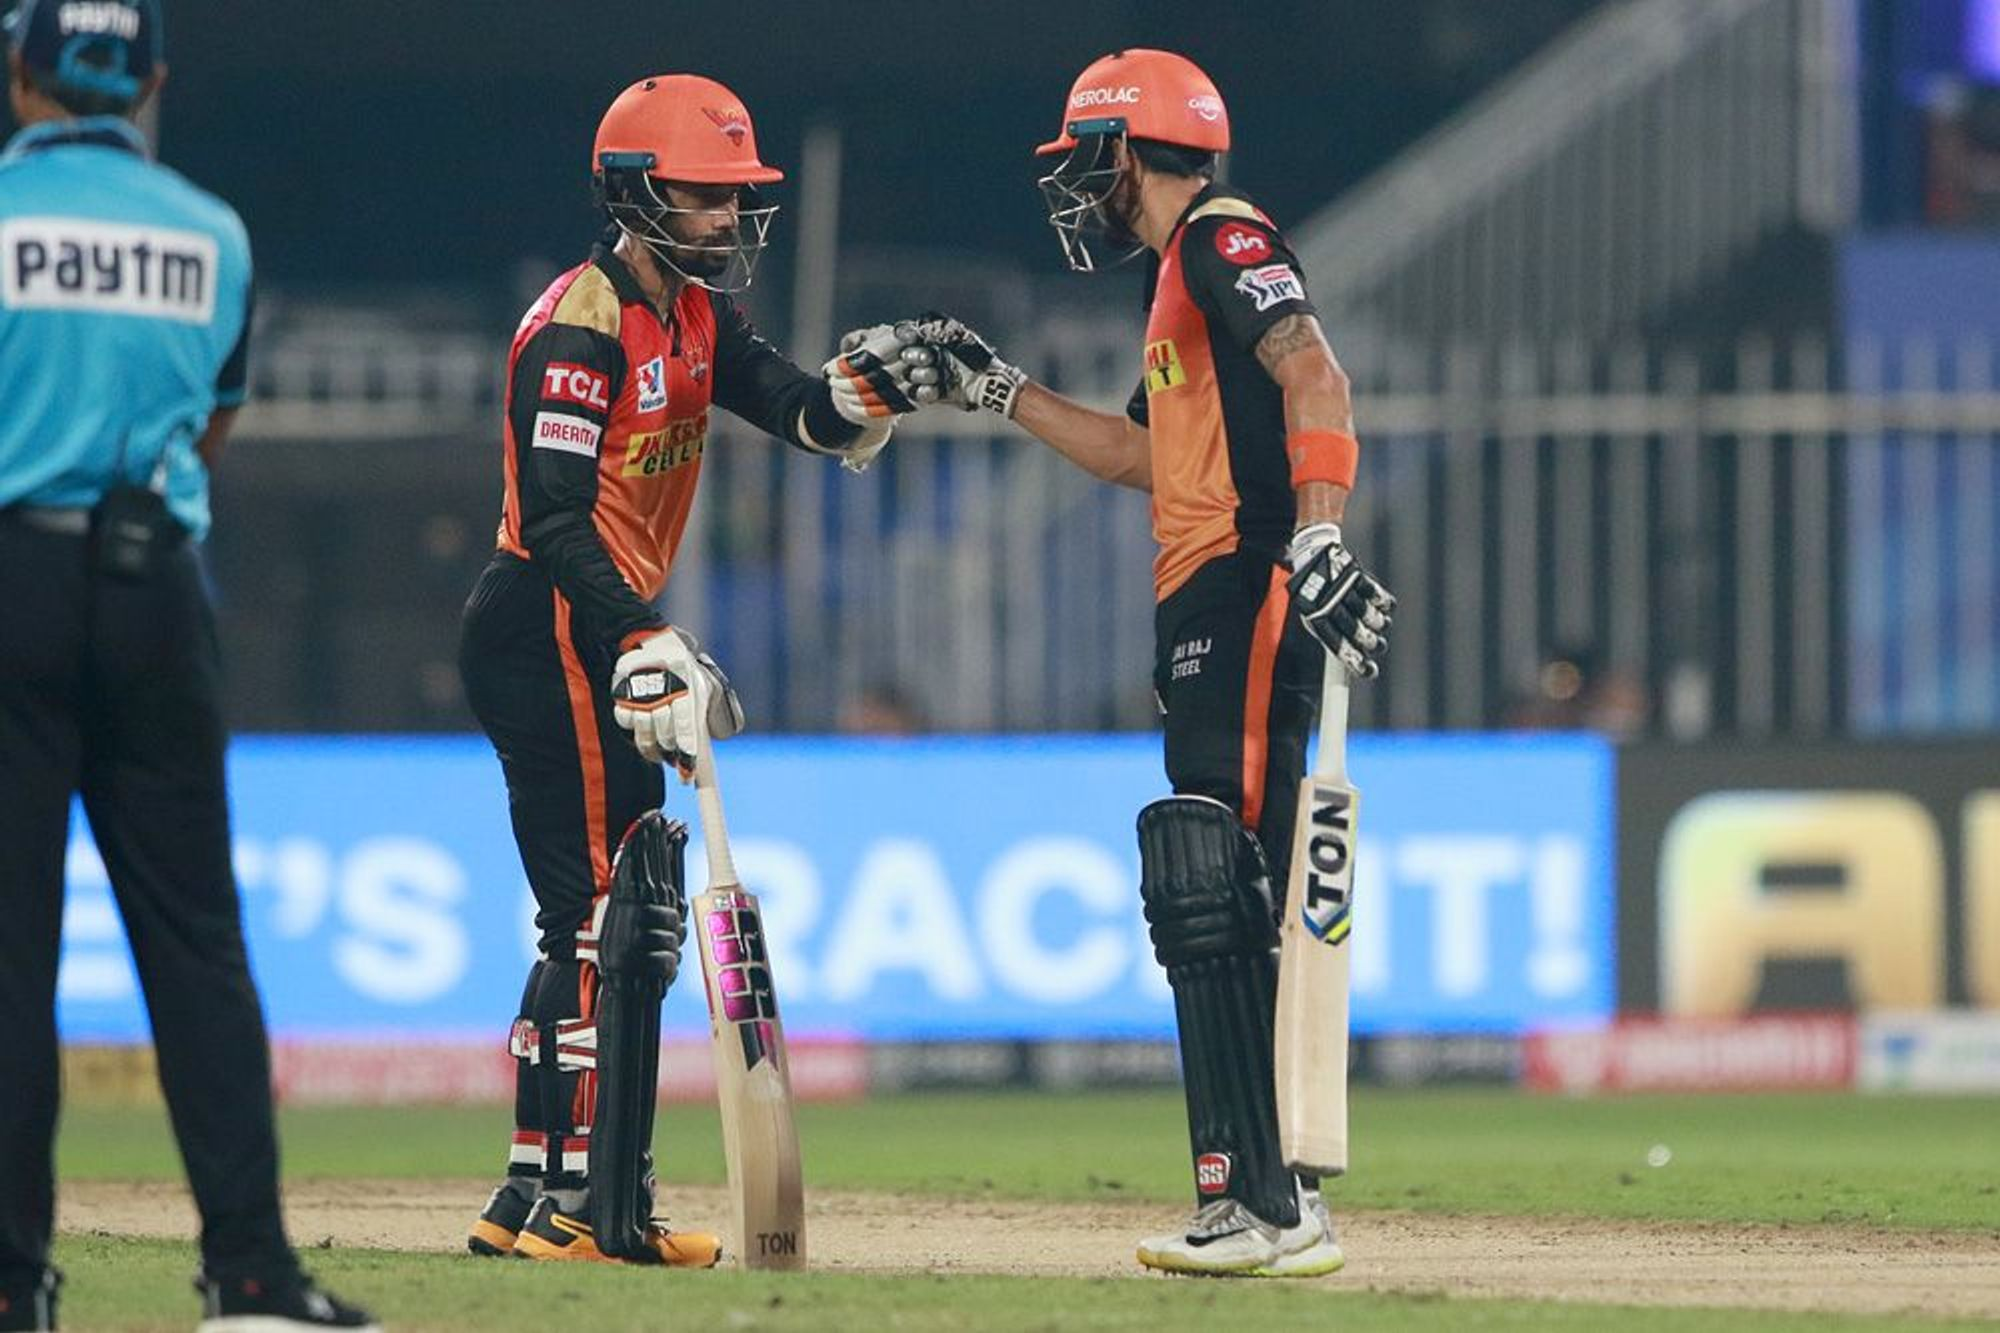 Saha (39) and Pandey (26) added 50 runs for 2nd wicket for SRH | BCCI/IPL